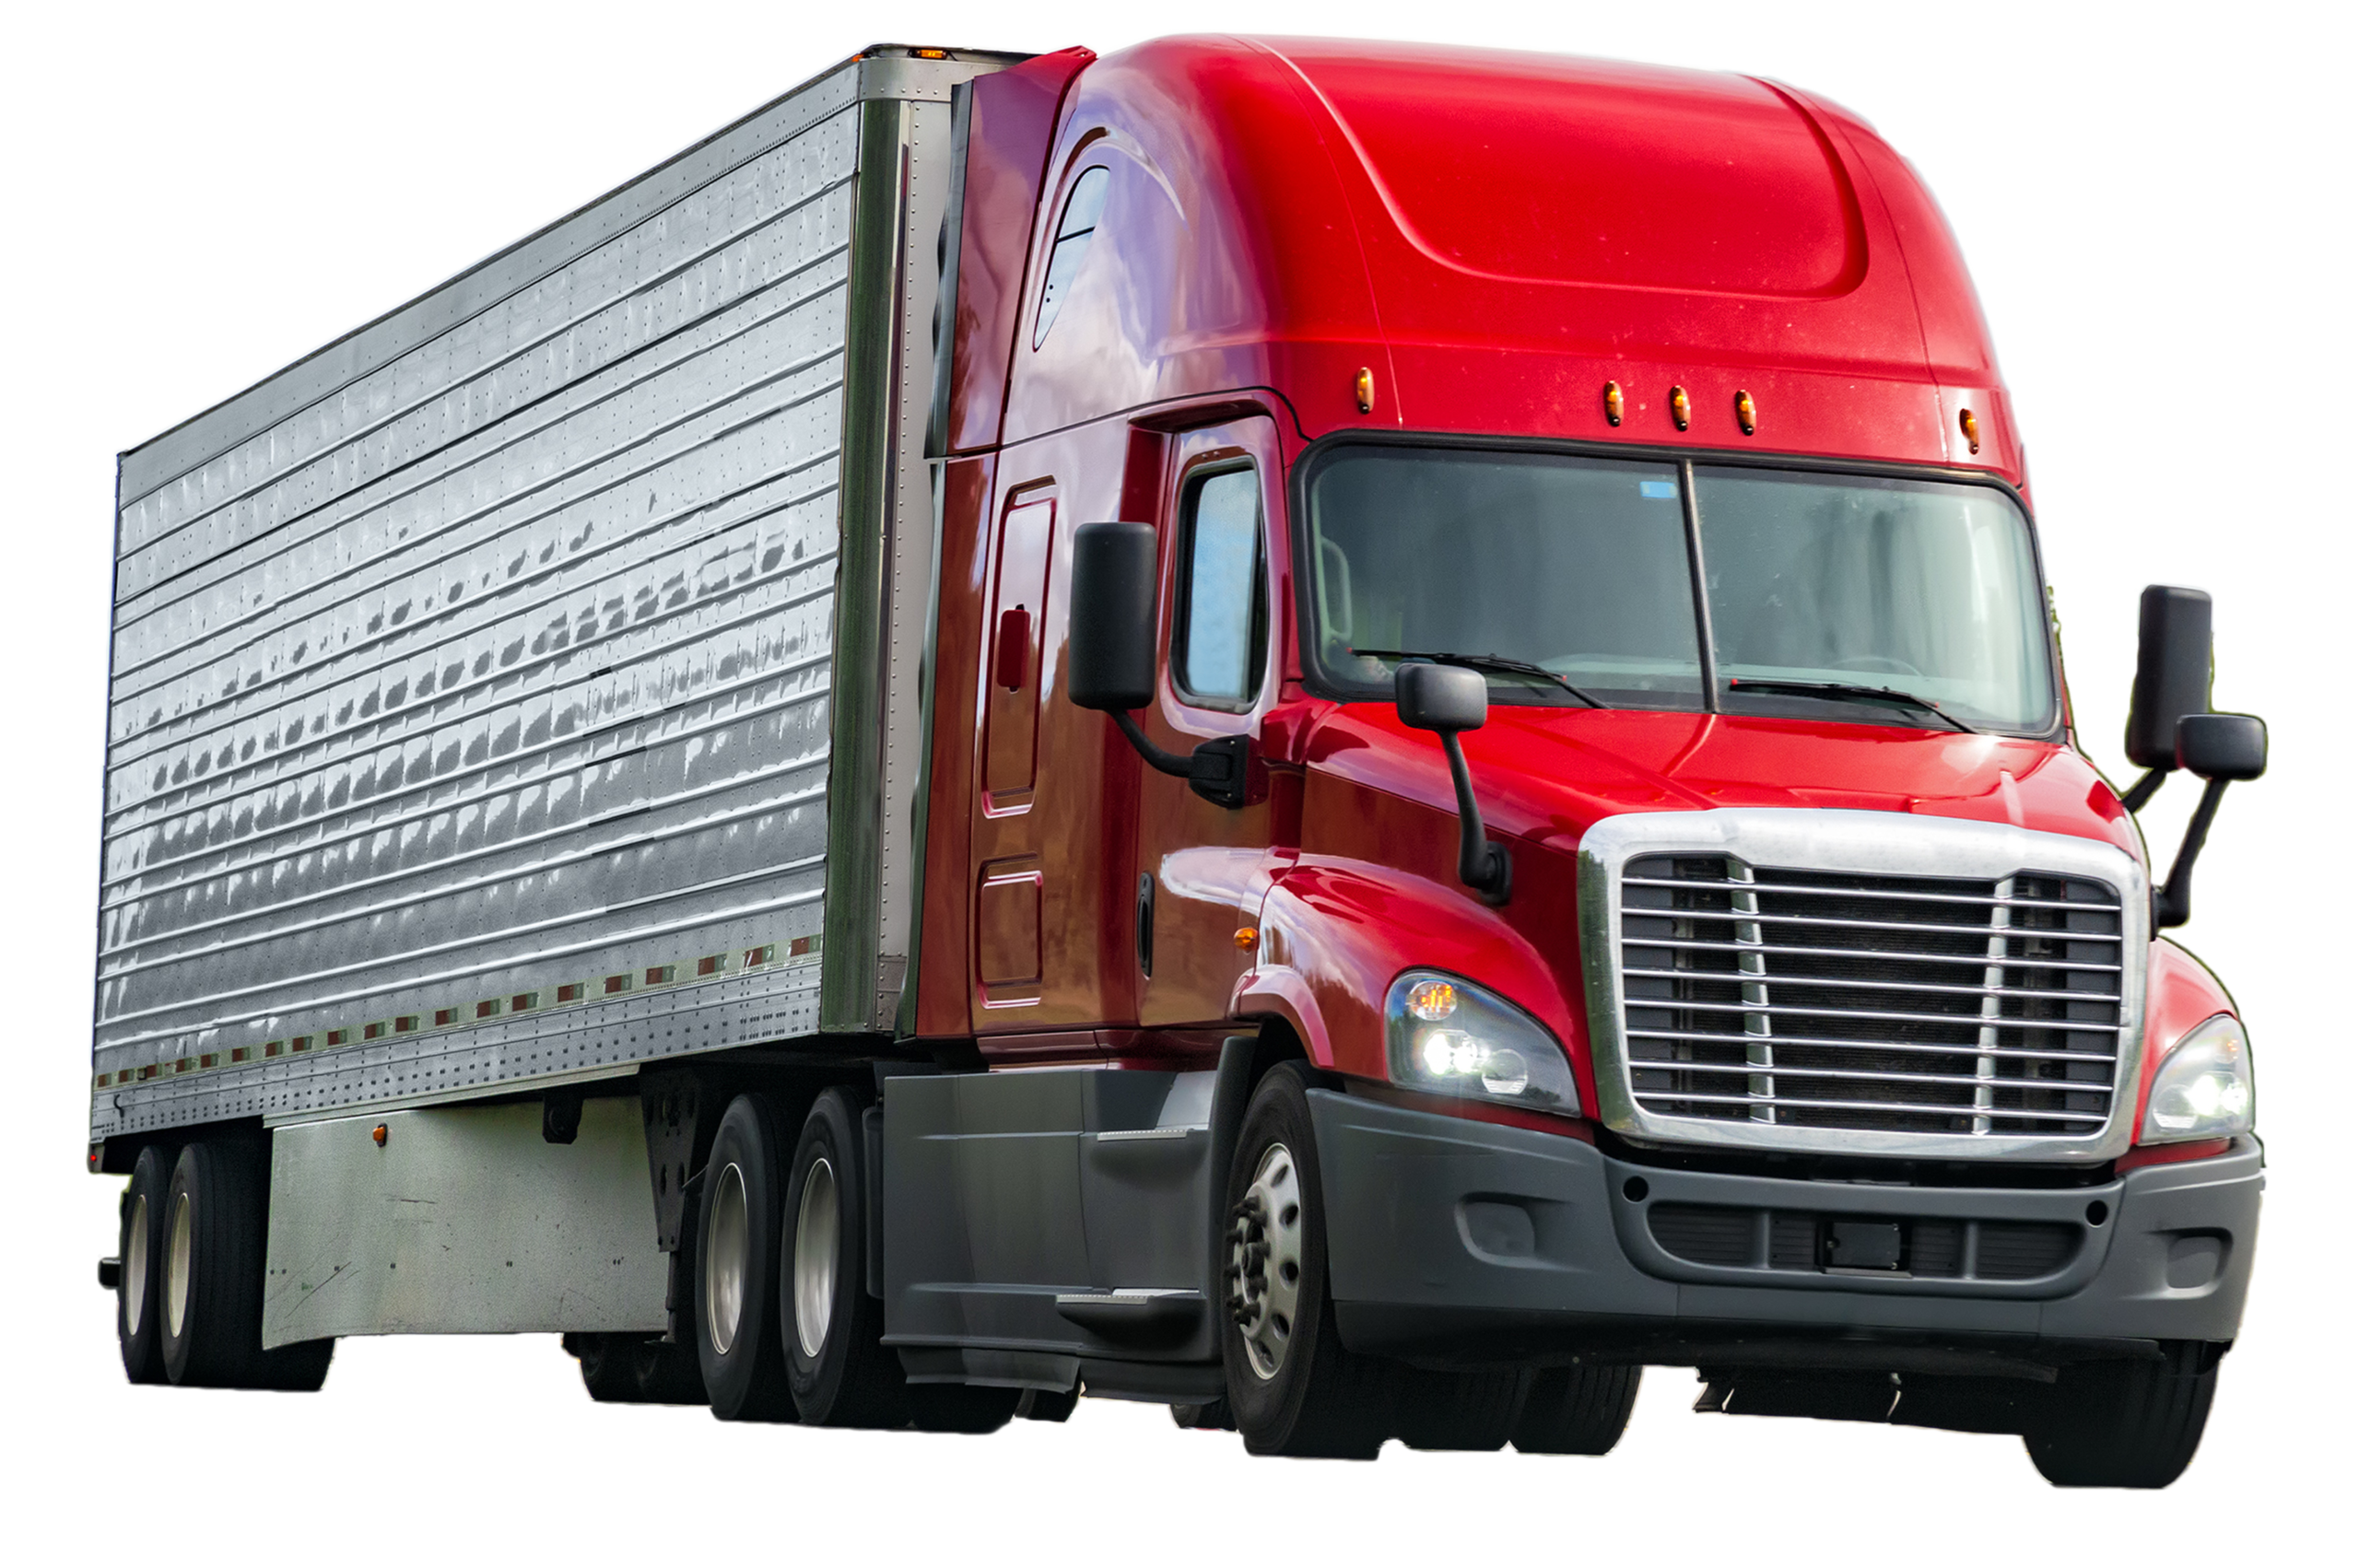 PFS-Freight-Delivering-Confidence-Transportation-trucking-logistics-scaled.png